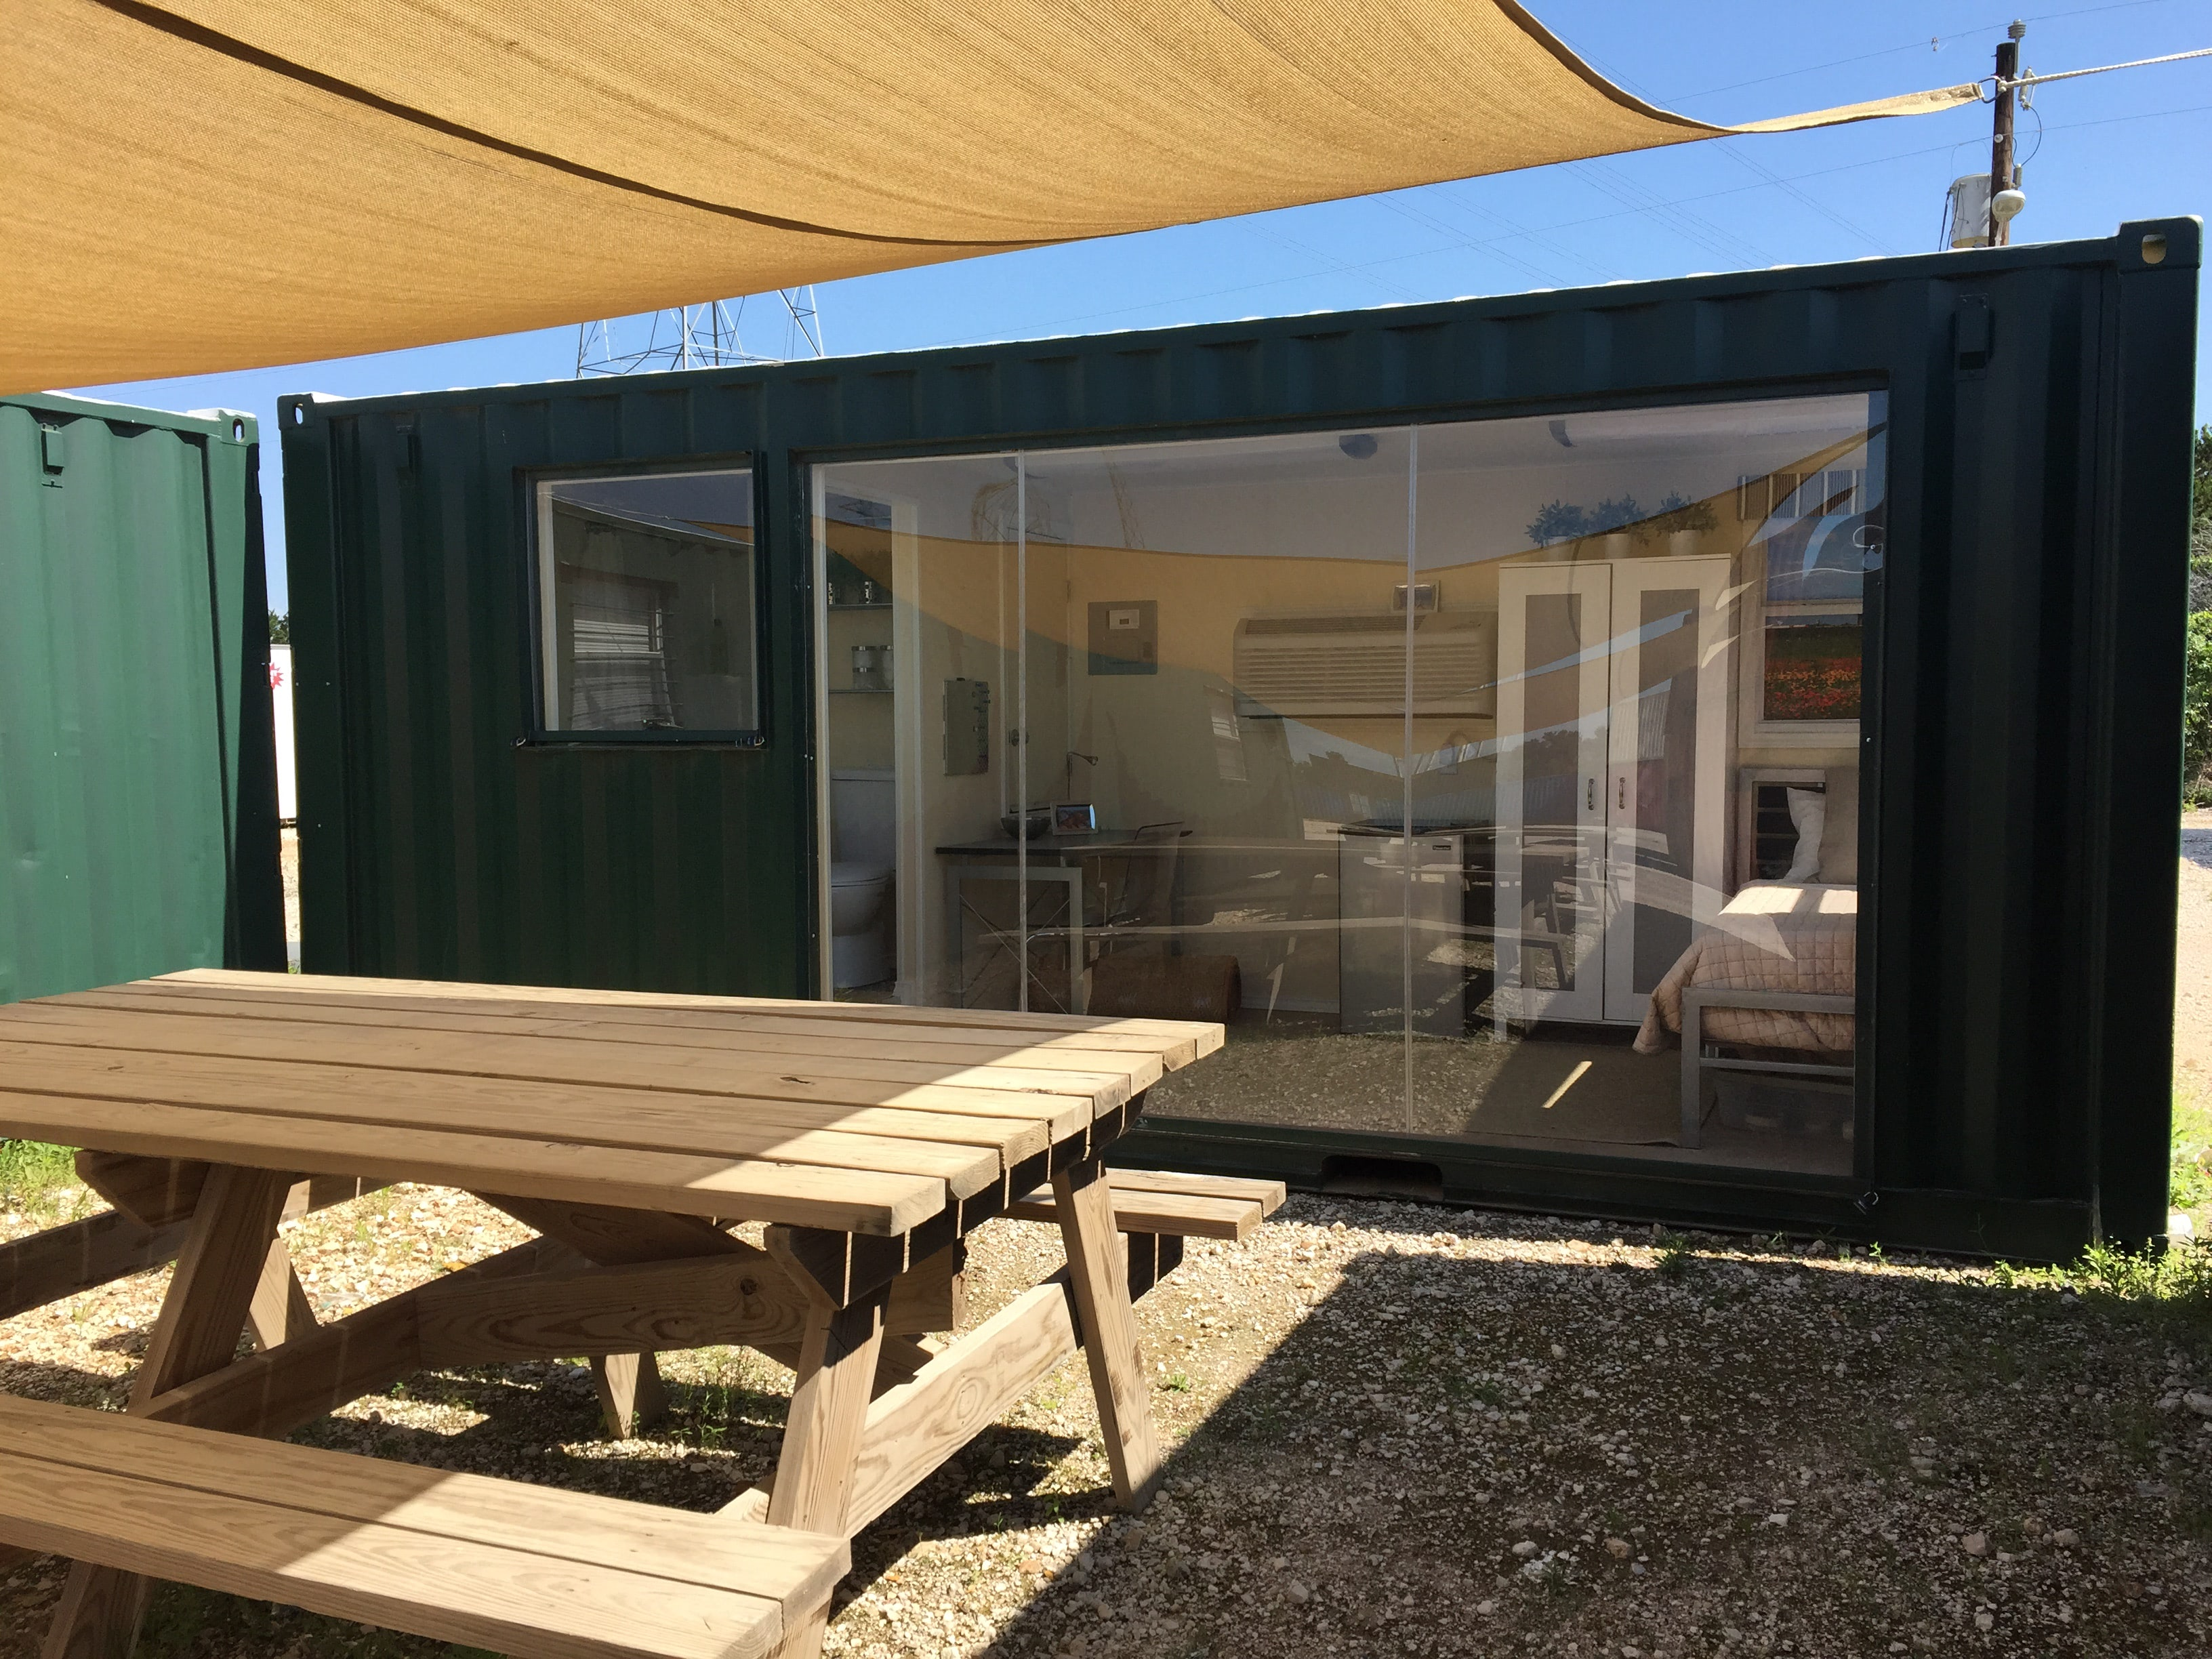 conex_houses_for_work_camps